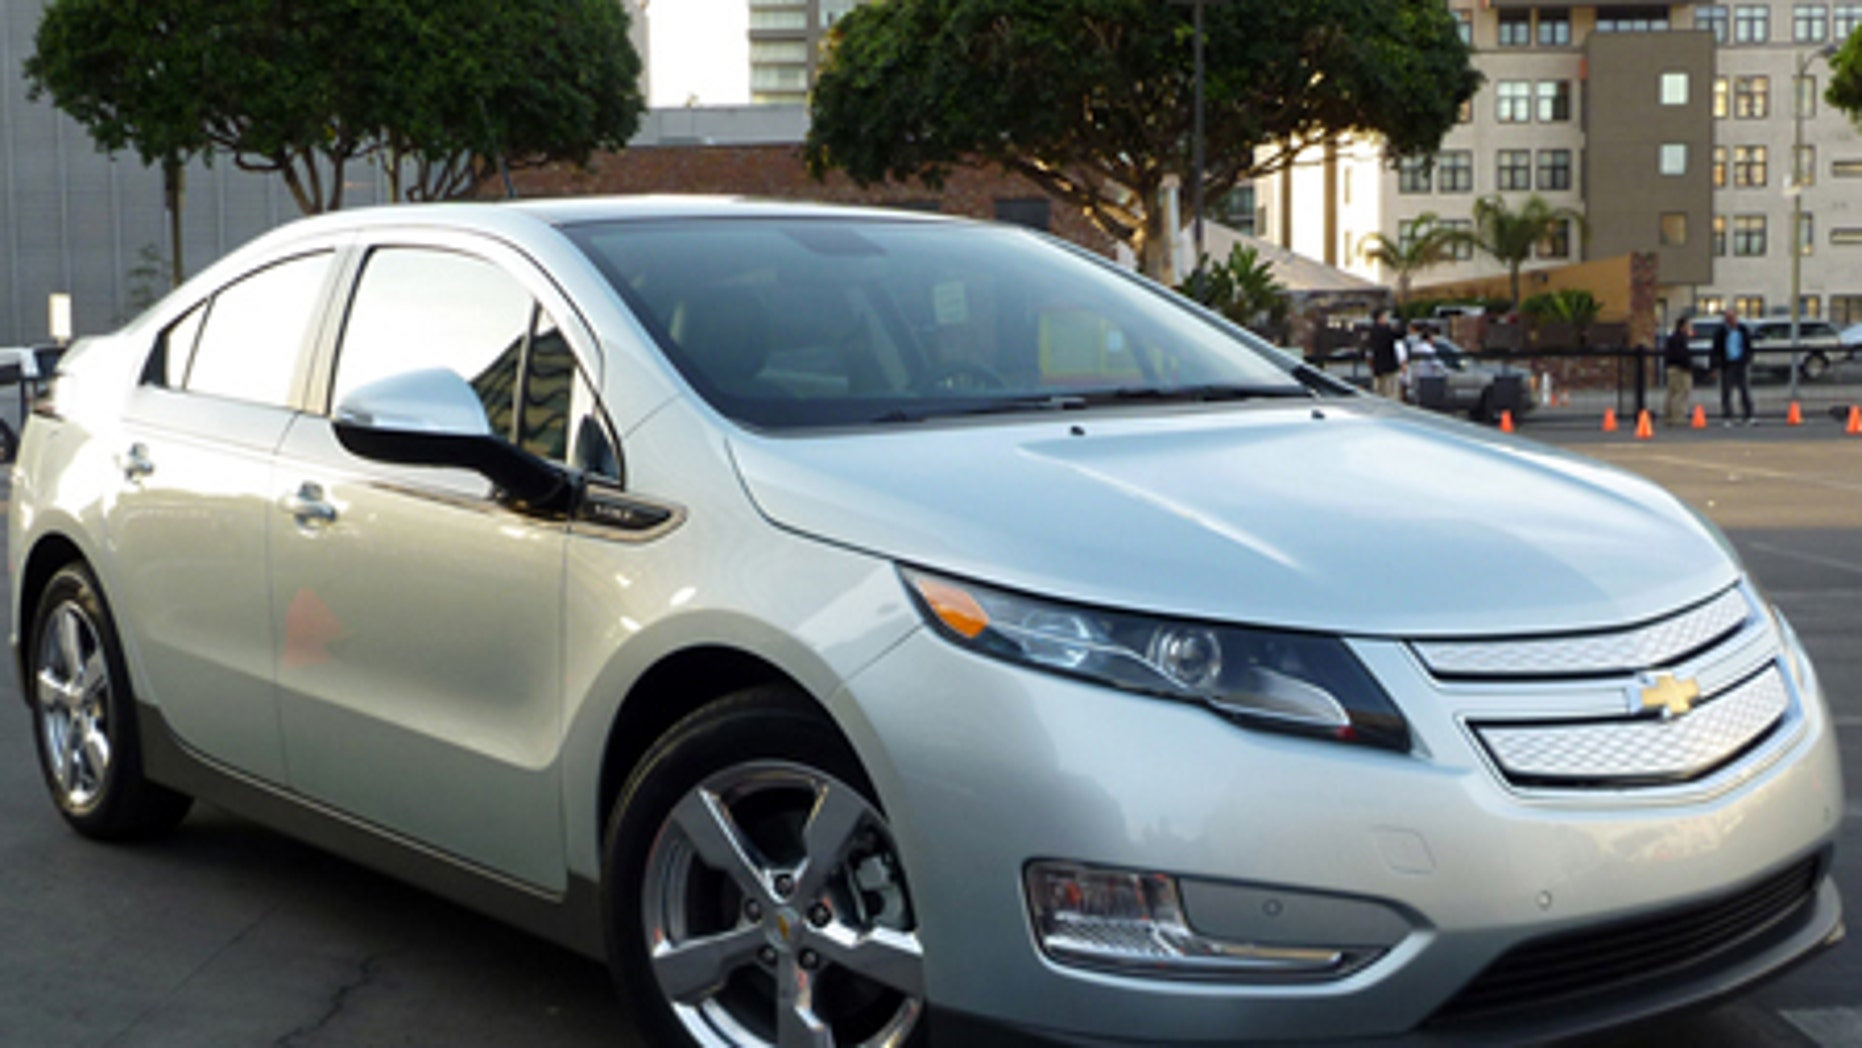 Chevy Volt Lease >> Gm To Sell Chevy Volt For 41g Lease For 350 A Month Fox News